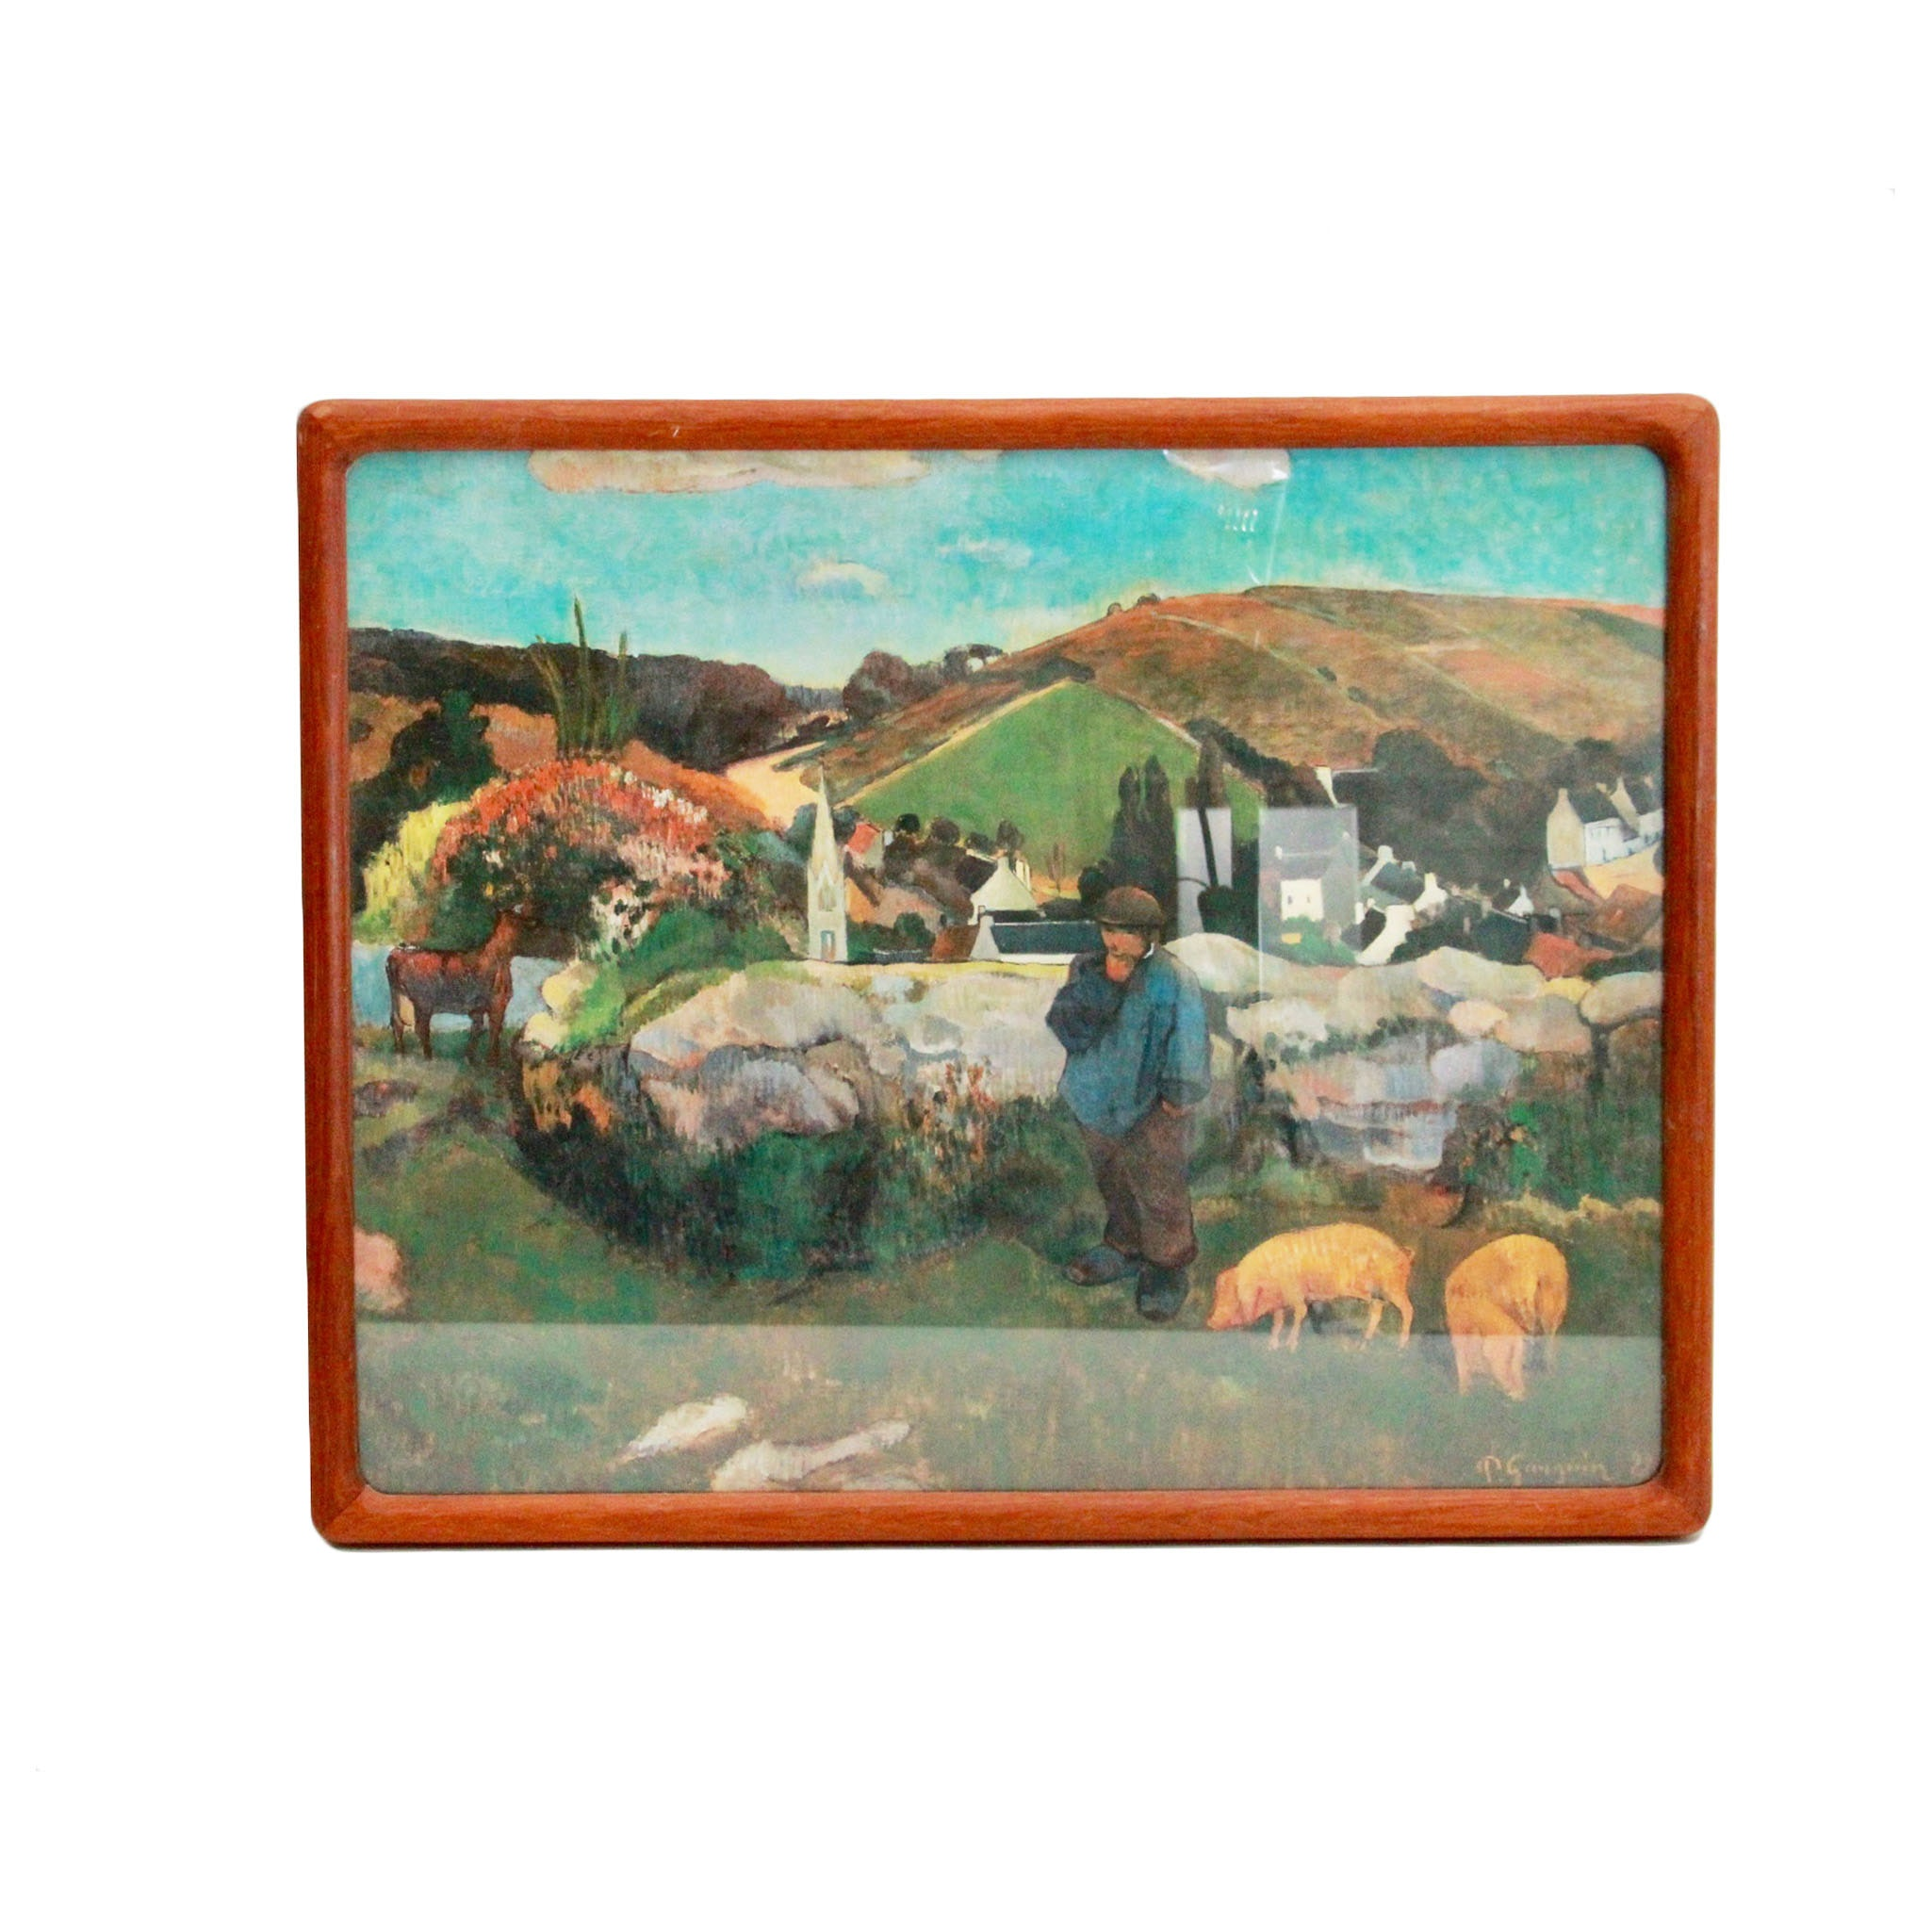 "After Paul Gauguin ""The Swineherd"" Giclee Print"